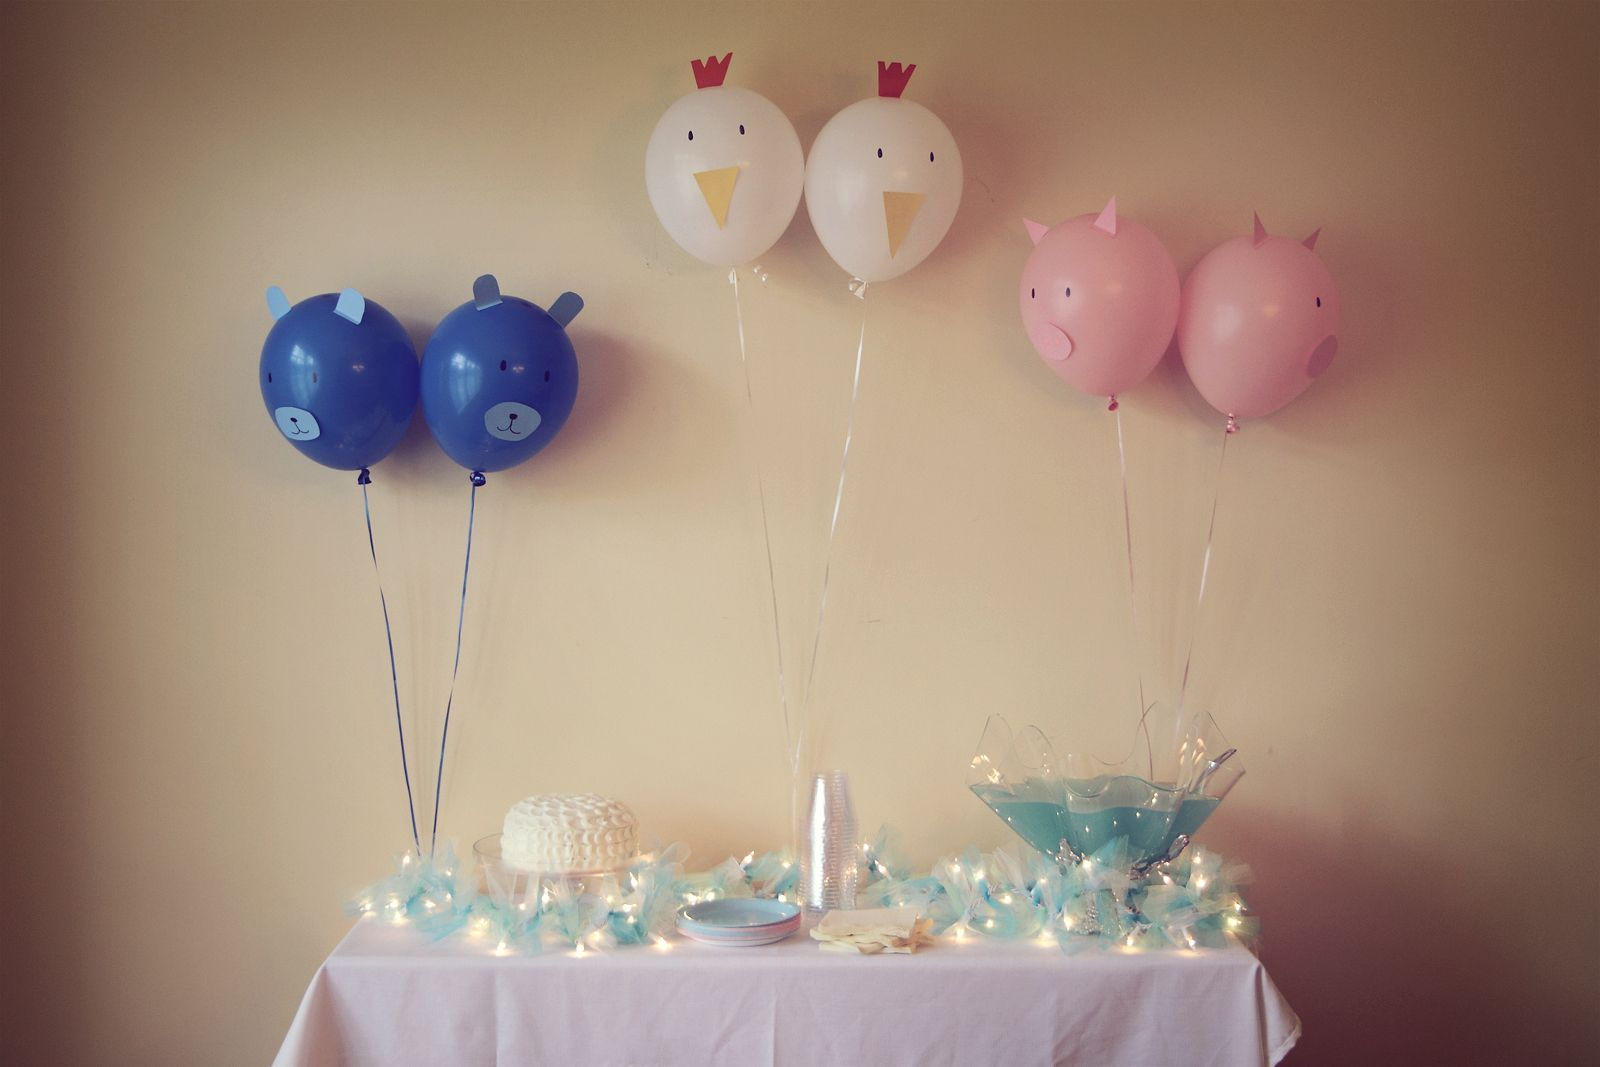 noahs ark baby shower ideas for baby shower party. Noah\u0027s Ark Baby Shower Theme (2X2 For Twins!), Balloon Animal Pairs! Noahs Ideas Party E